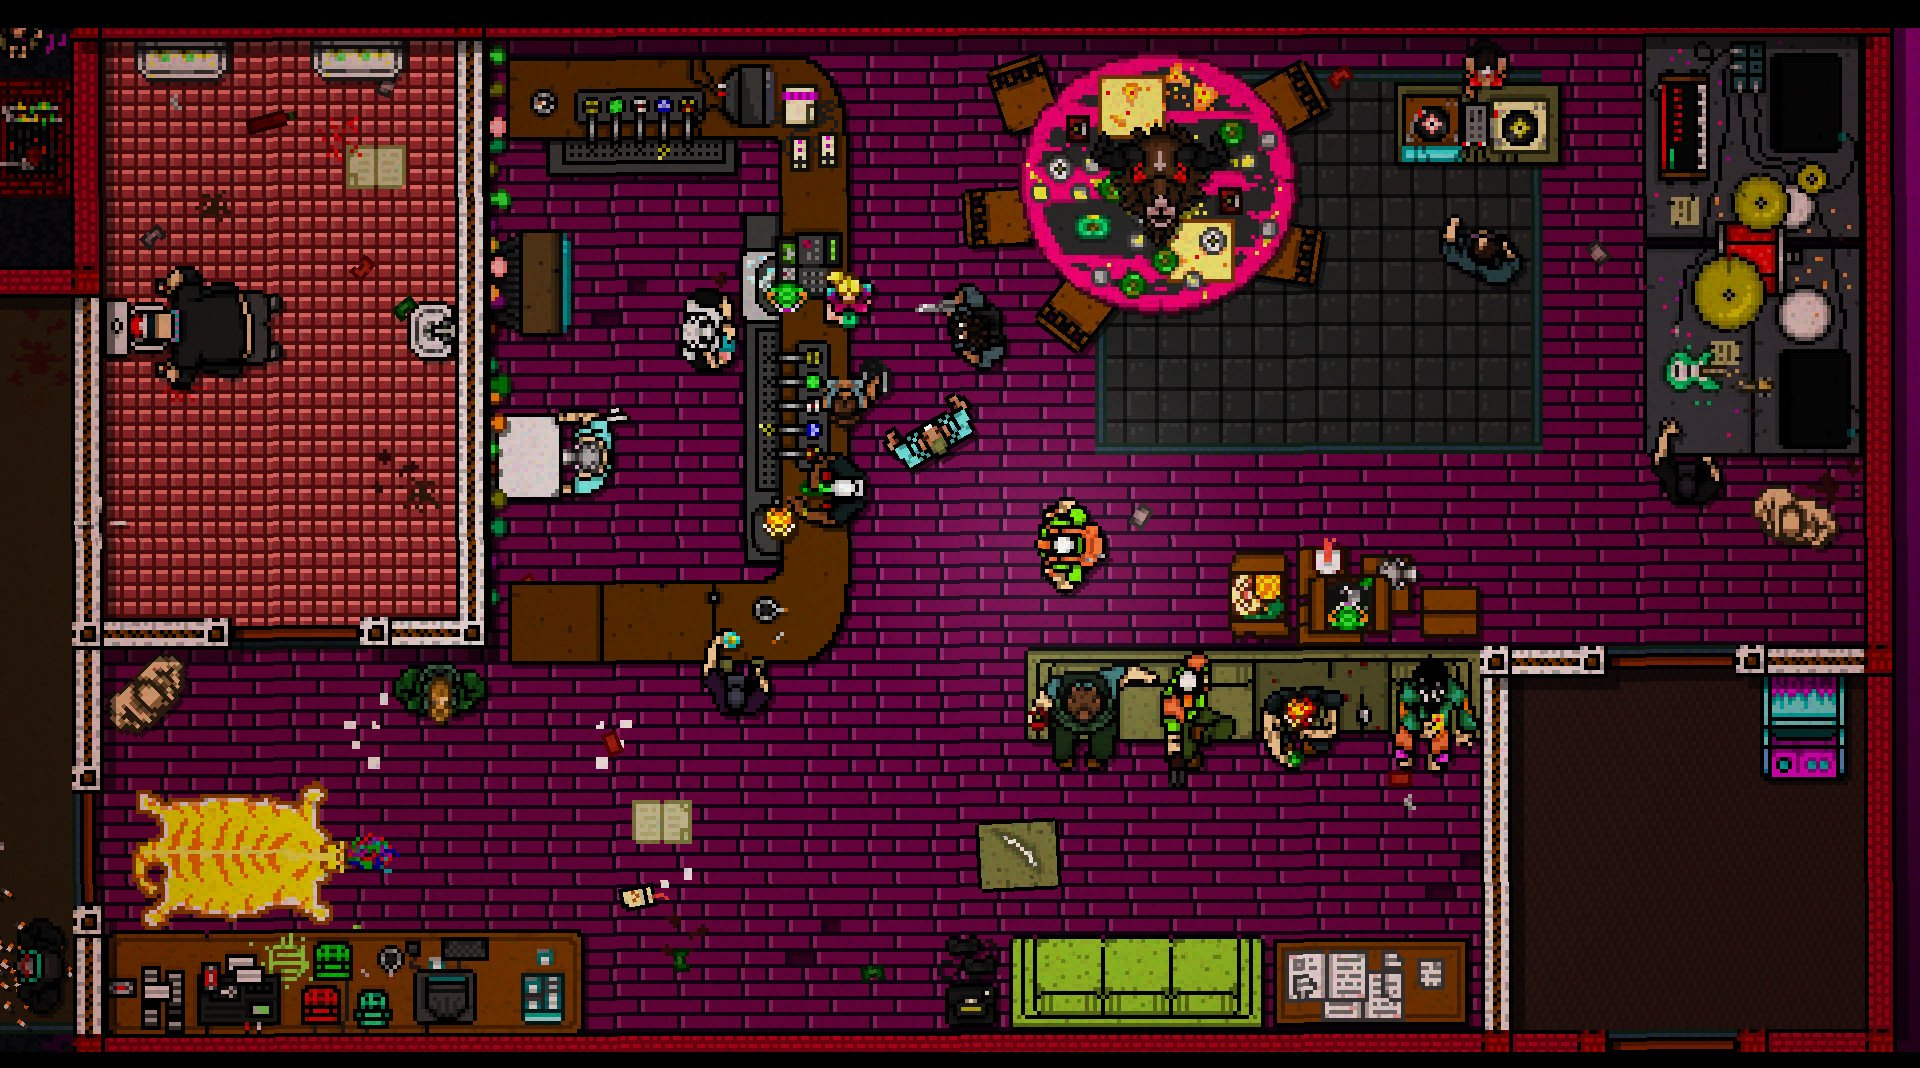 Devolver Digital attending e3 - Hotline Miami 2 gameplay